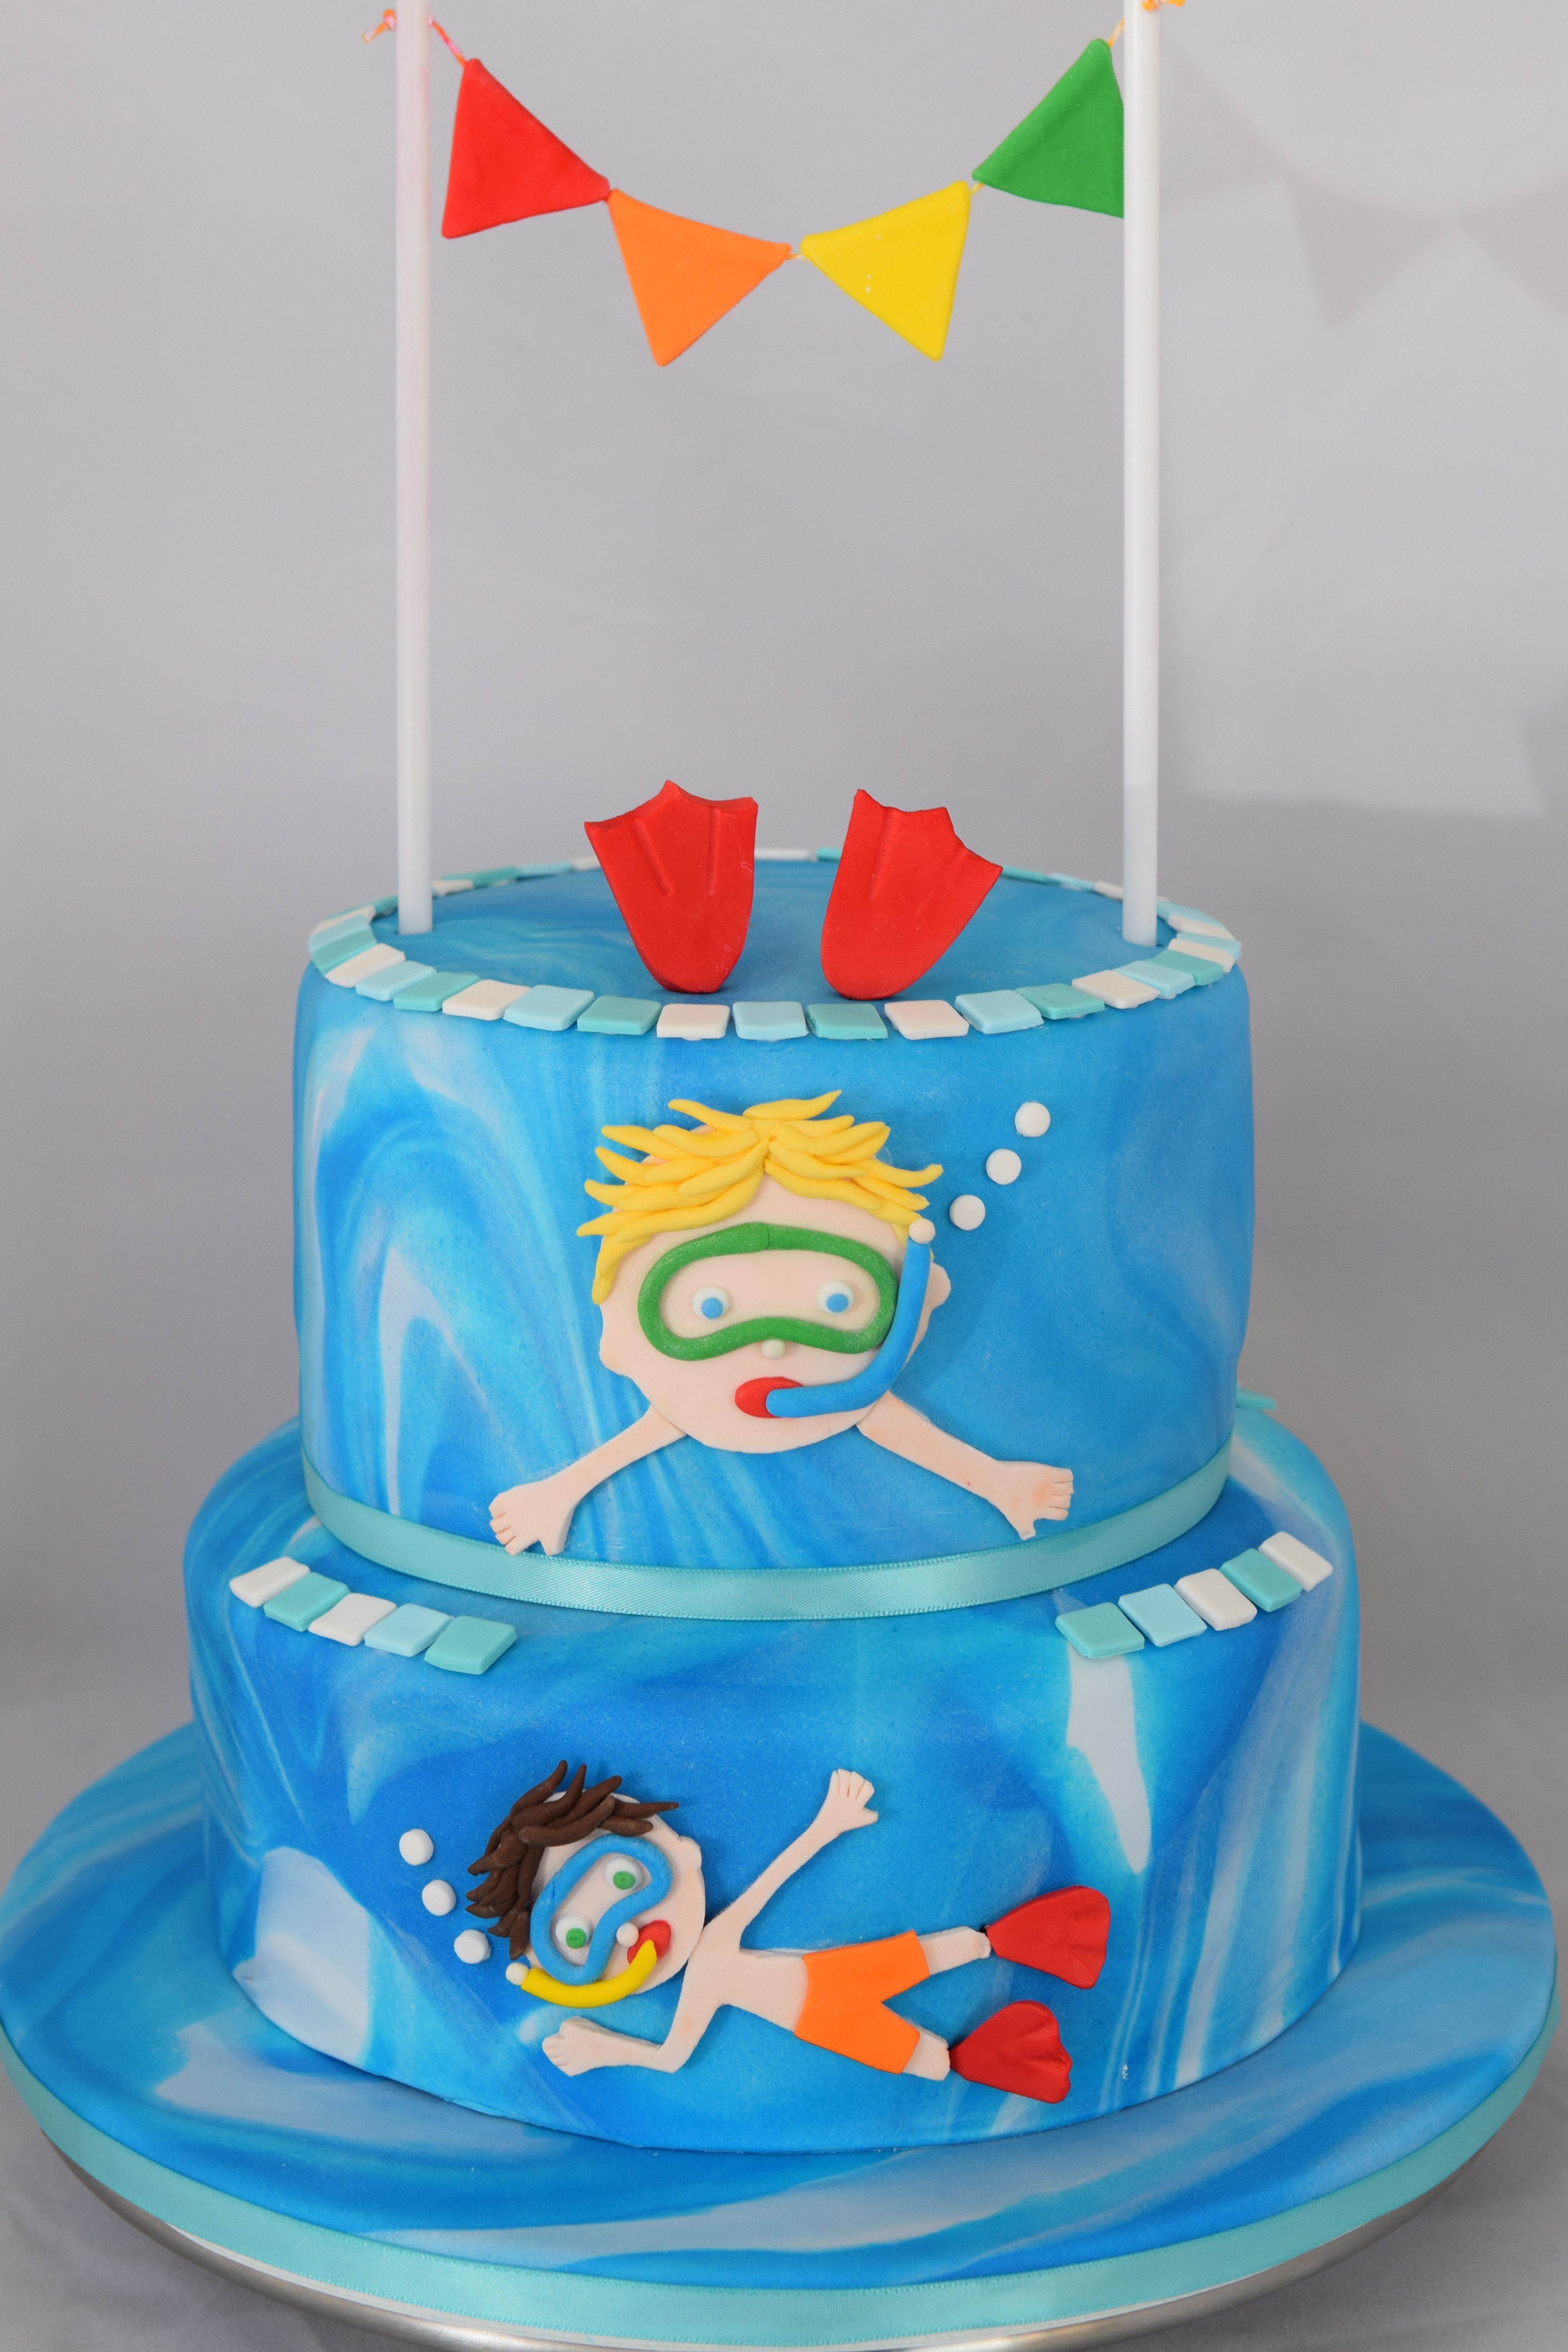 Cake Decorations For Pool Party : #Pool Party Cake, #Children s Pool Party Cake Claudia s ...